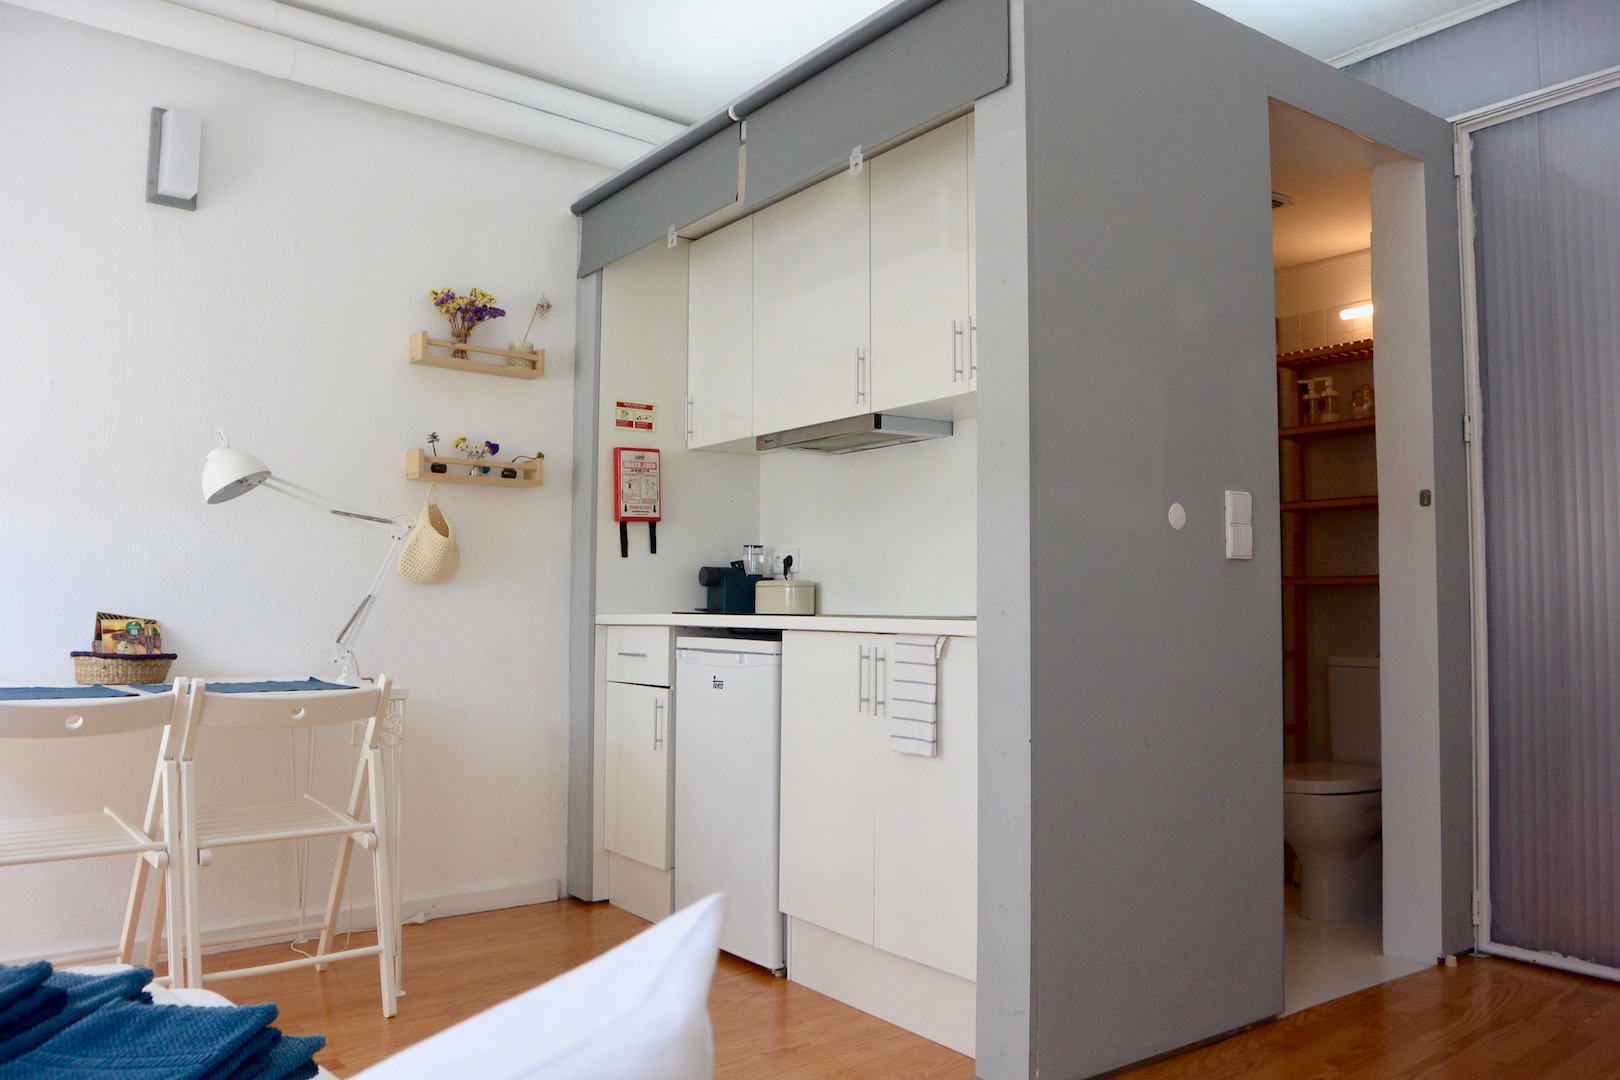 studio-essential-stay-porto-3065a86902f00708123285ccd95f983b